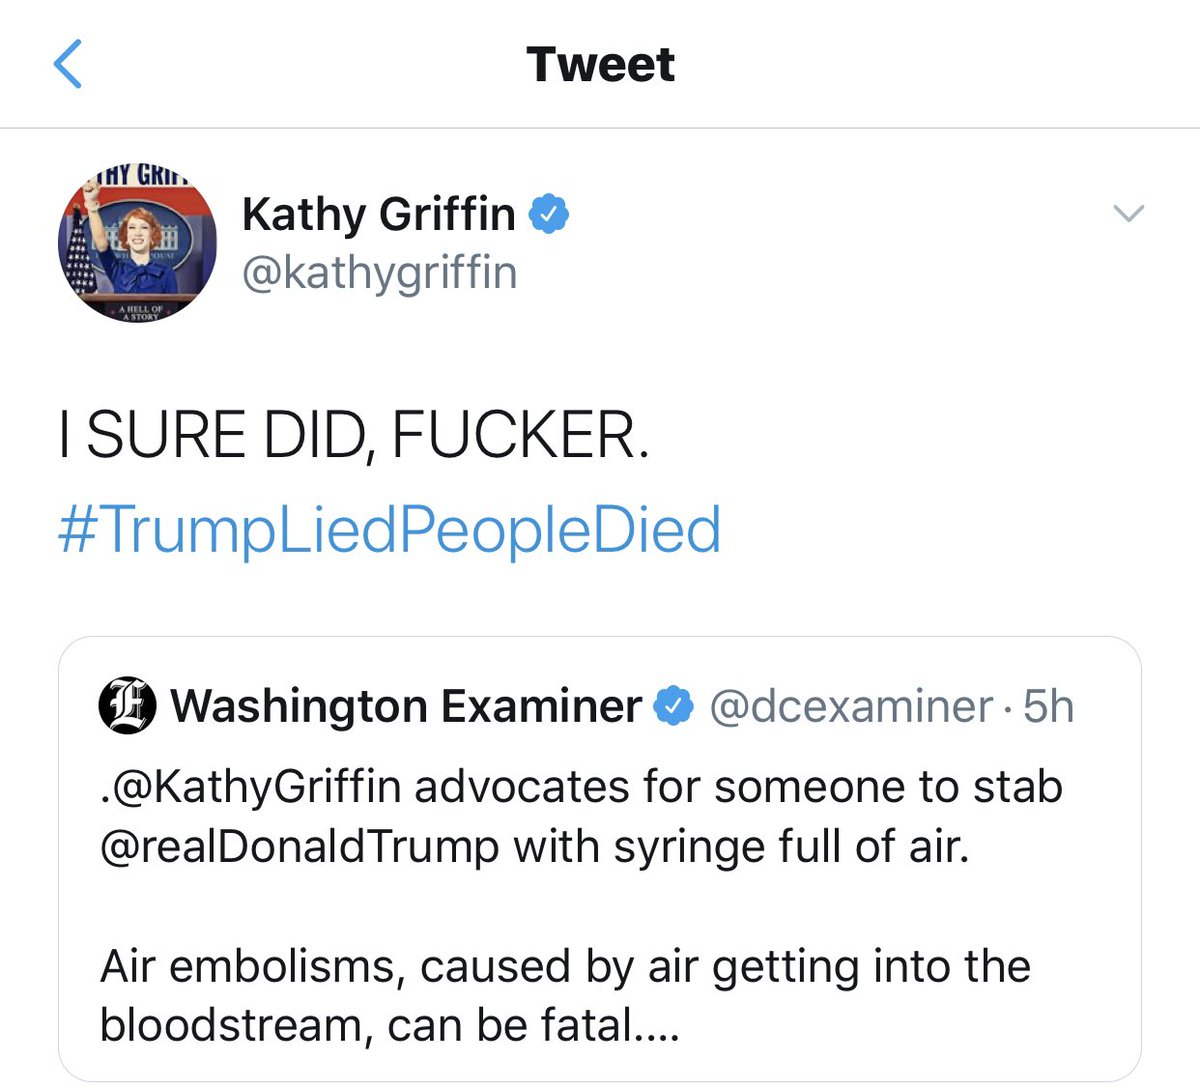 She held a decapitated head of President Trump and now she is talking about stabbing him. We the people should demand an arrest! Use this hashtag as much as possible #ArrestKathyGriffin #ArrestKathyGriffin #ArrestKathyGriffin #ArrestKathyGriffin #ArrestKathyGriffin